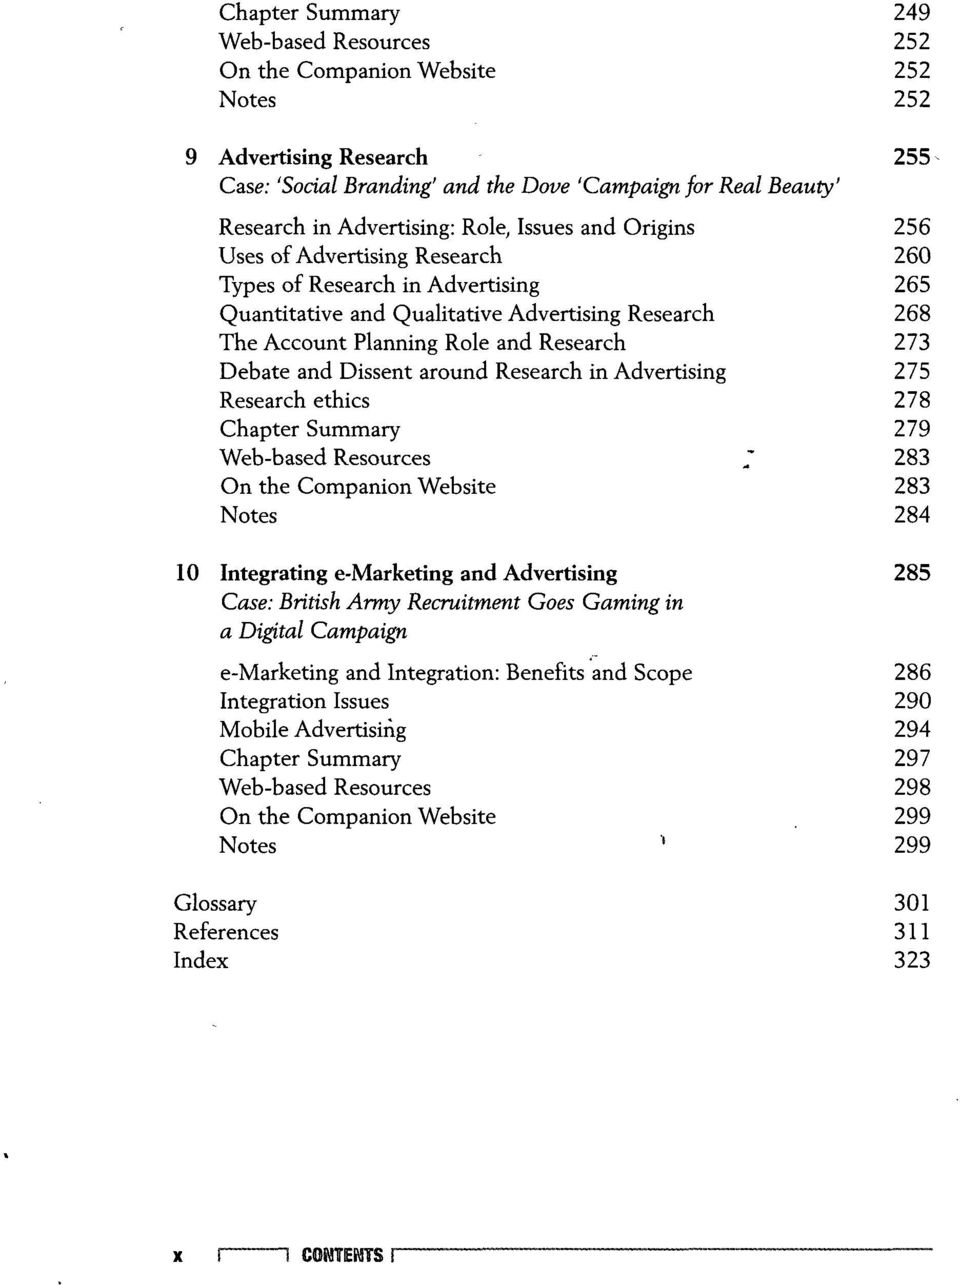 Debate and Dissent around Research in Advertising 275 Research ethics 278 Chapter Summary 279 Web-based Resources ~ 283 On the Companion Website 283 Notes 284 10 Integrating e-marketing and